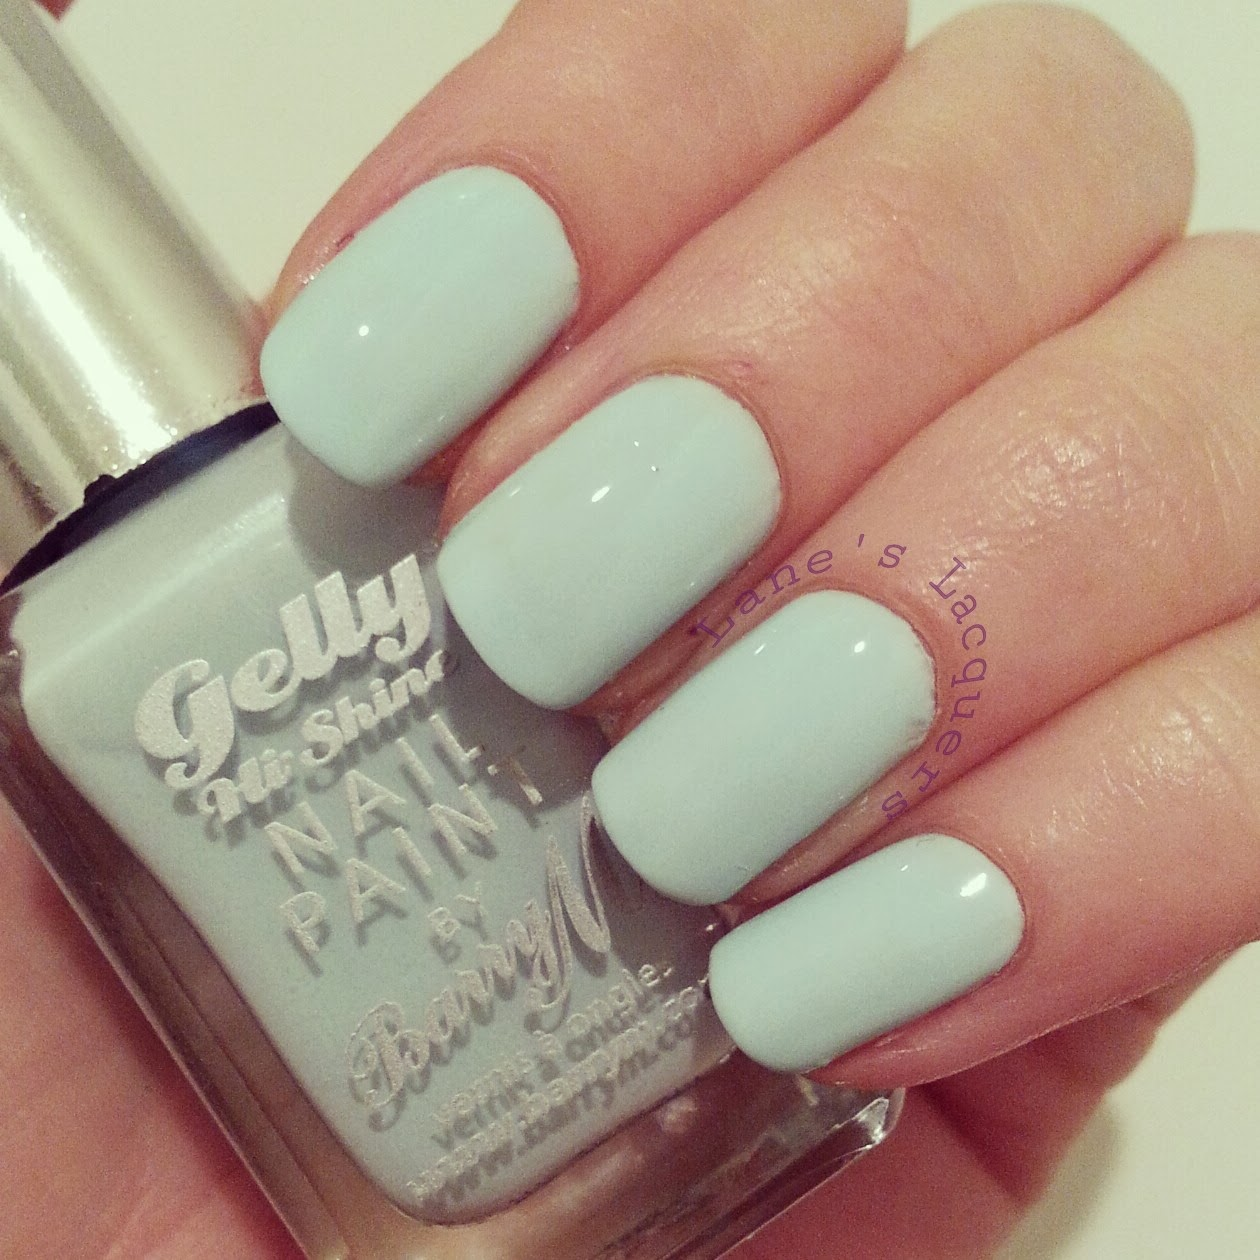 new-barry-m-gelly-nail-polish-huckleberry-swatch-nails